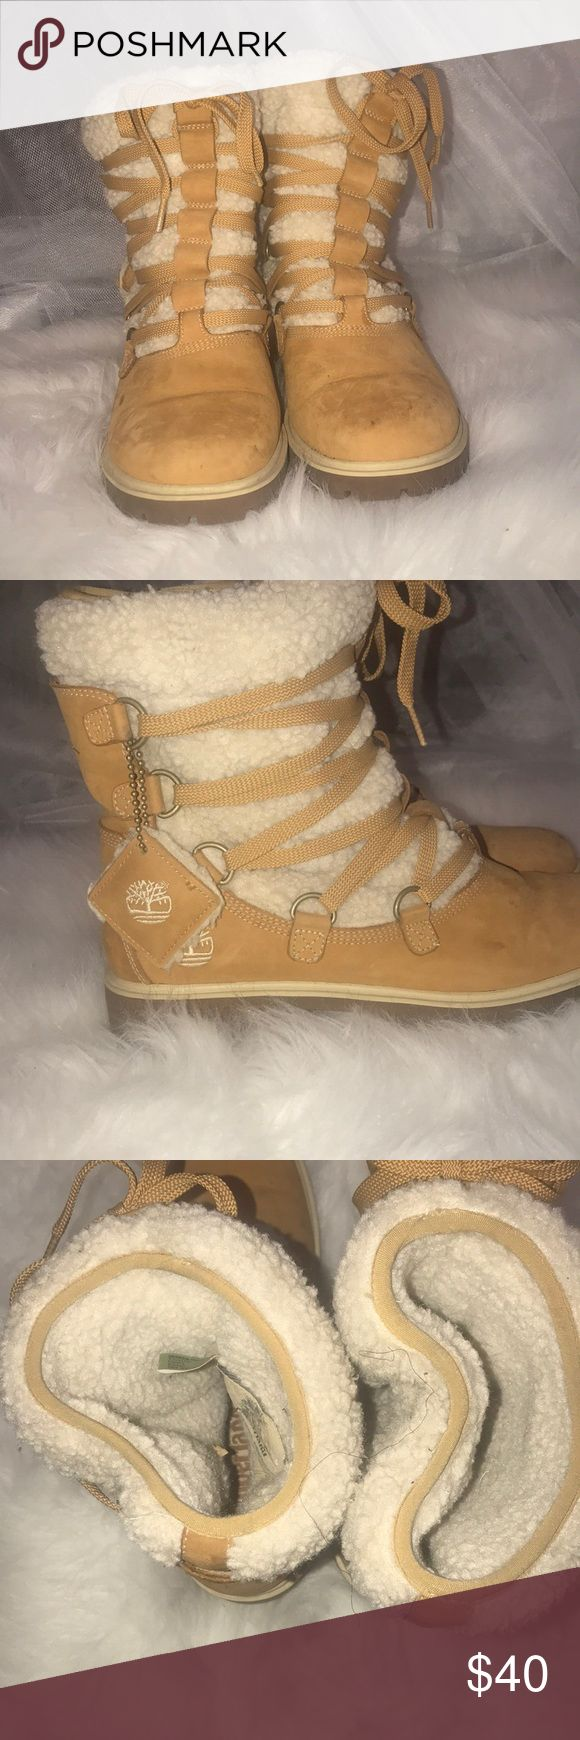 Women's Fur Timberland Boots Women's wheat Timberlands with fur to jazz up style. Has a few scuffs on toes as shown. Timberland Shoes Winter & Rain Boots